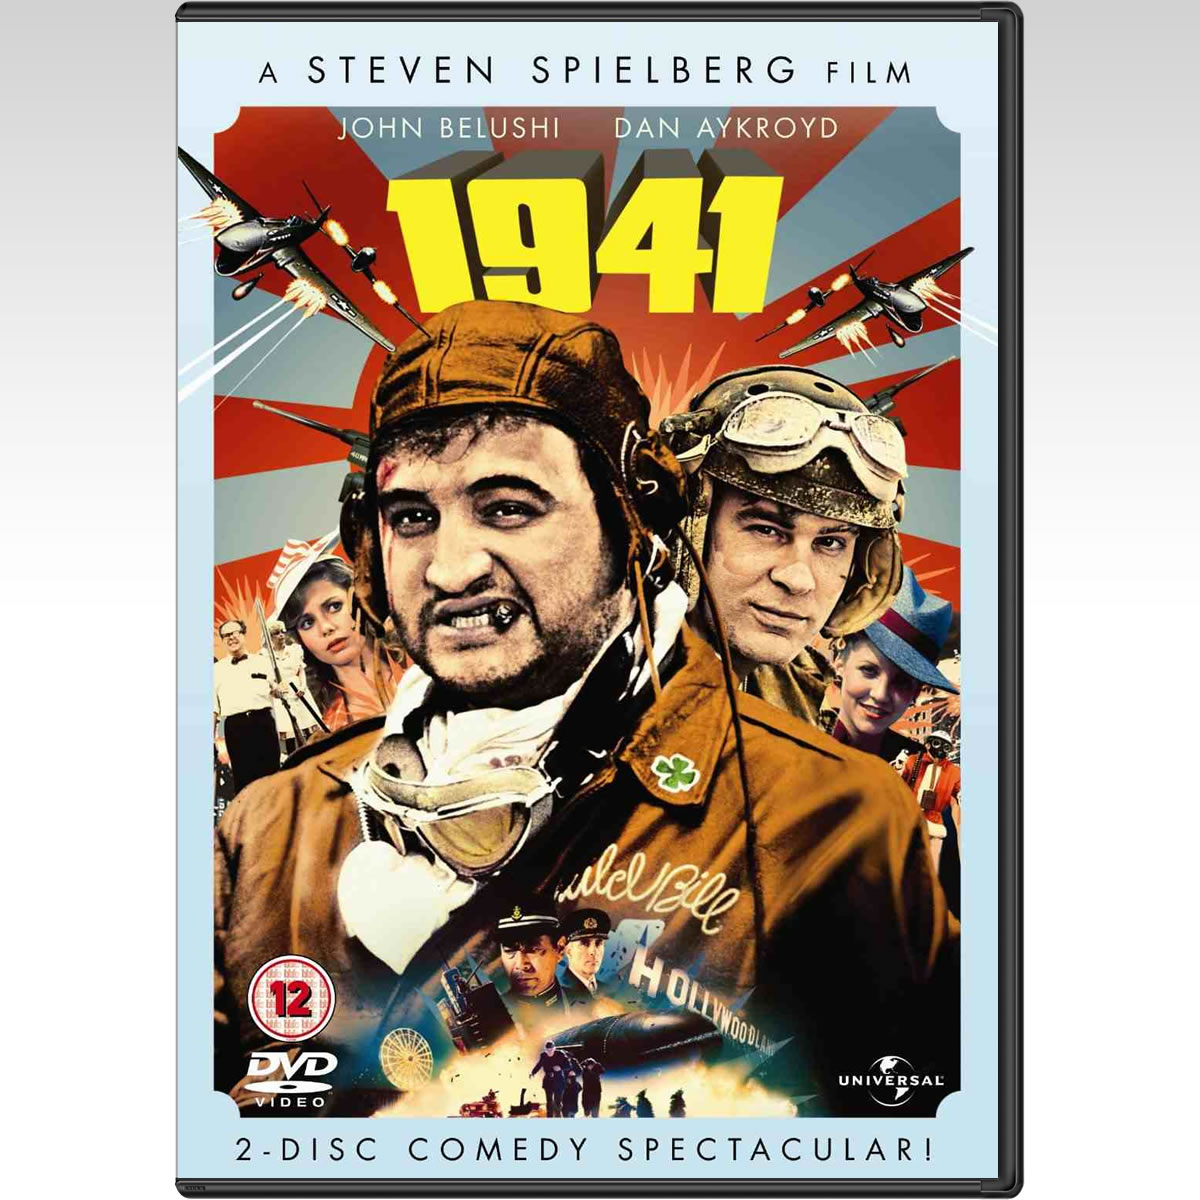 1941 Theatrical Cut & Extended Cut - ��� ��� ���� ��� �� ��������� ��������; Theatrical Cut & Extended Cut Special Edition (2 DVD)